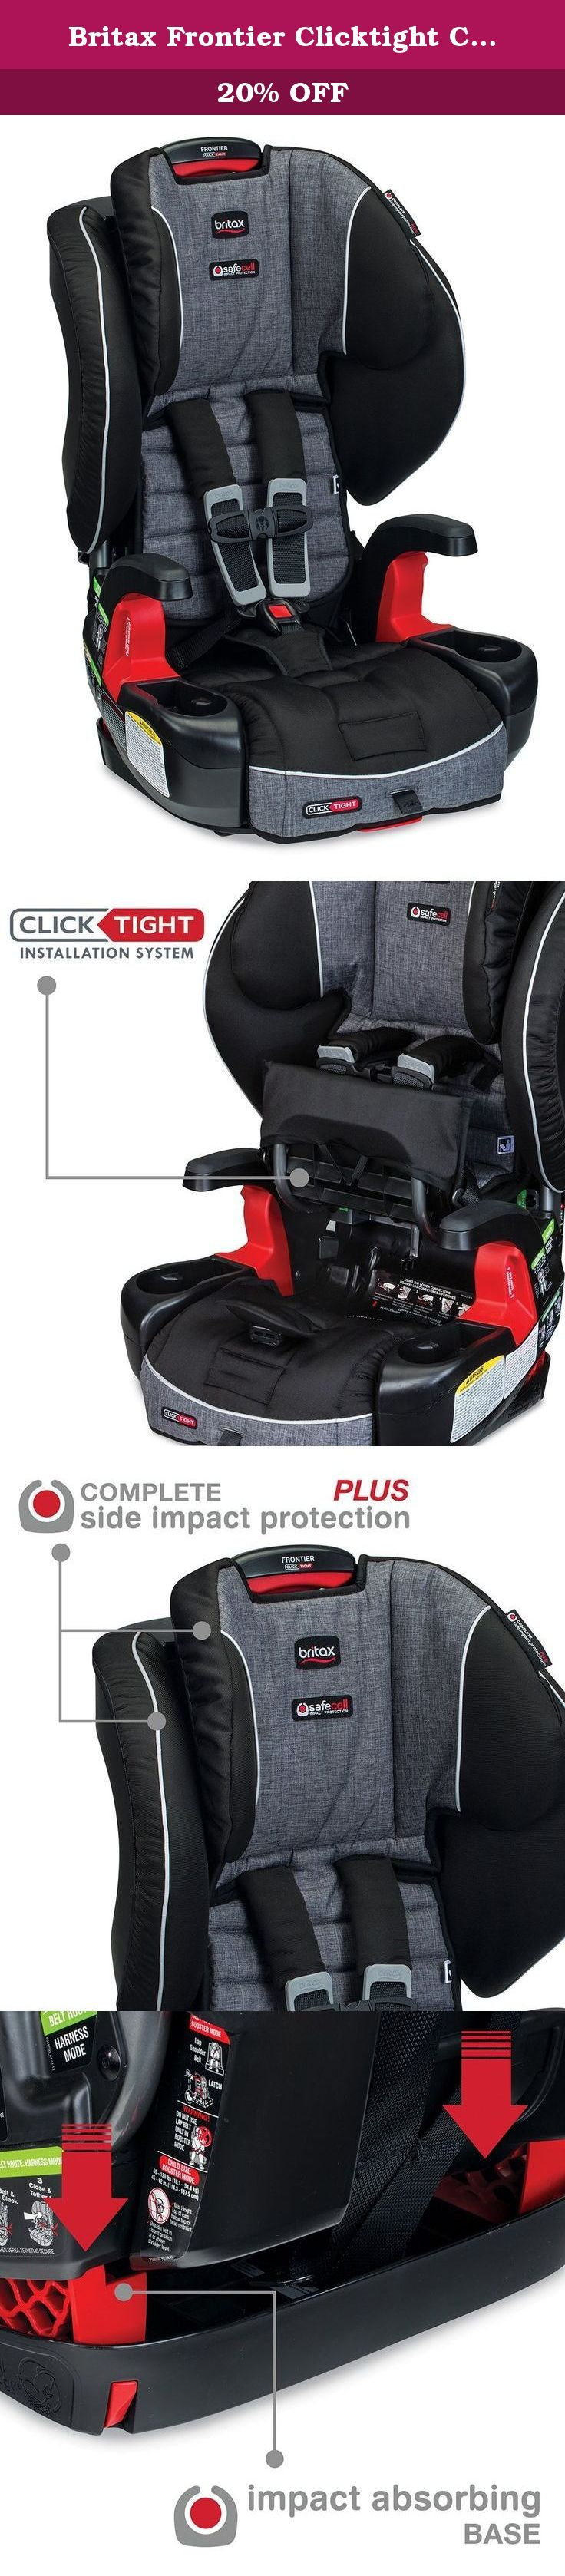 Britax Frontier Clicktight Combination Harness 2 Booster Car Seat Vibe The Perfect Ble Car Seats Booster Car Seat Car Seat Accessories